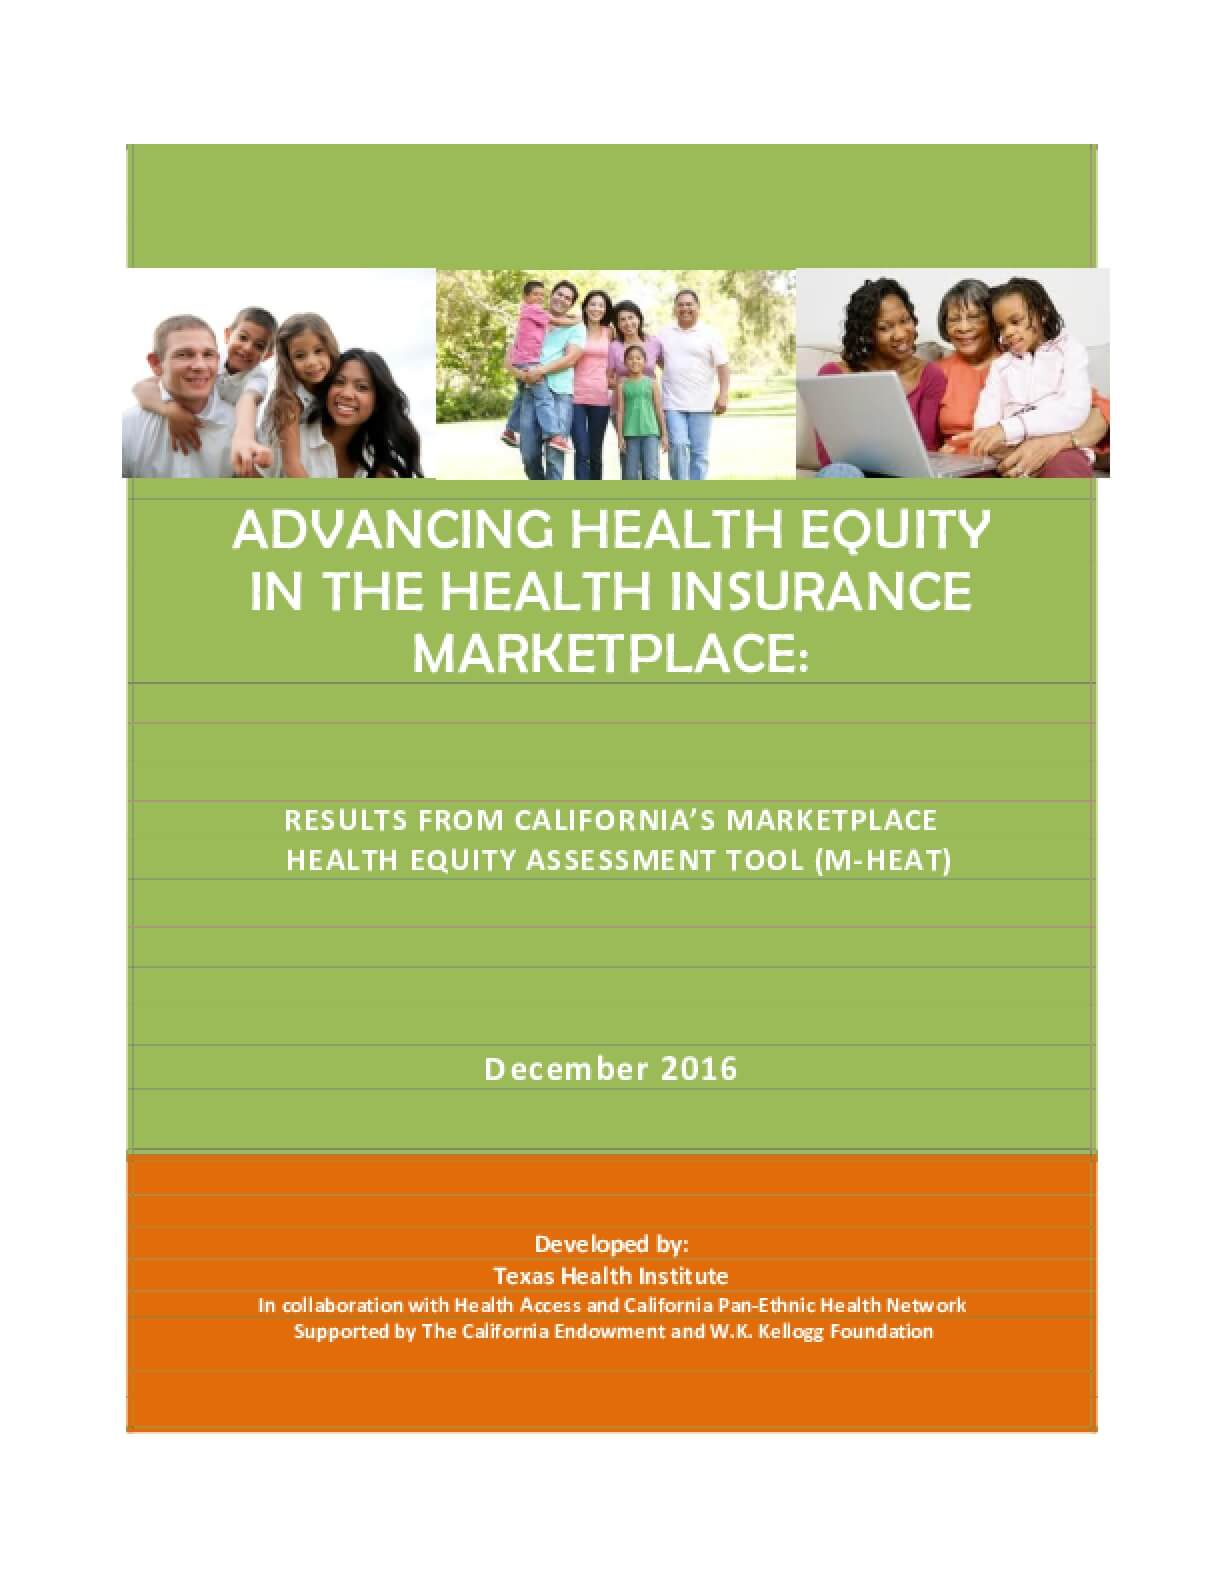 Advancing Health Equity in the Health Insurance Marketplace: Results from California's Marketplace Health Equity Assessment Tool (M-HEAT)